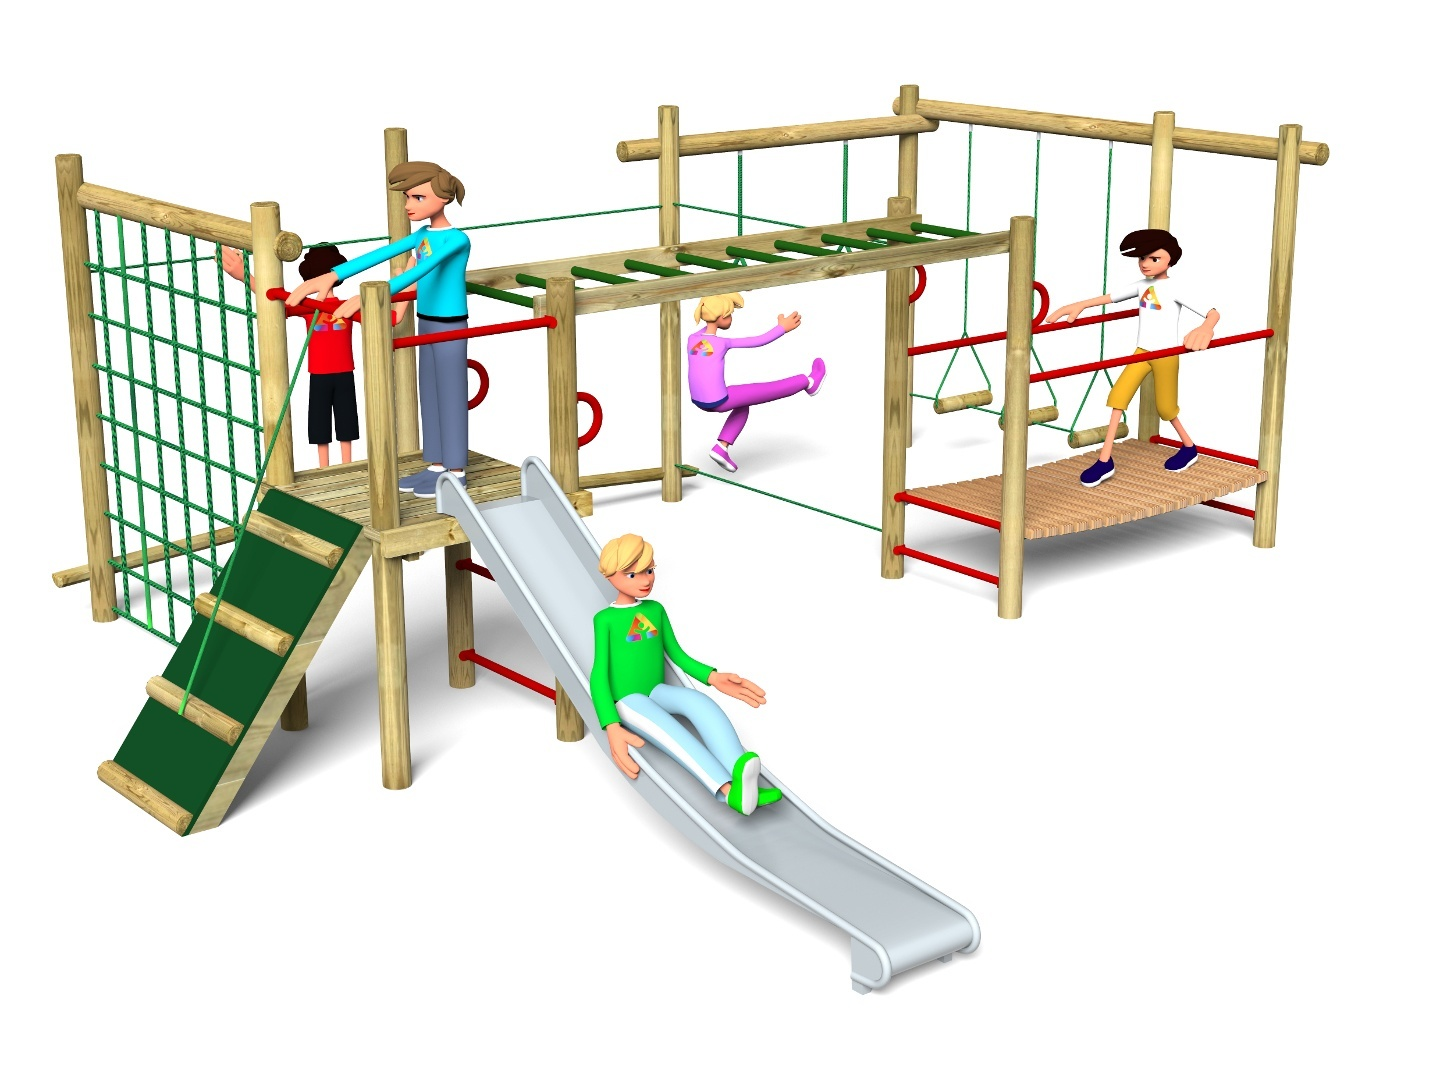 lavenham 2 climbing frame action play leisure. Black Bedroom Furniture Sets. Home Design Ideas